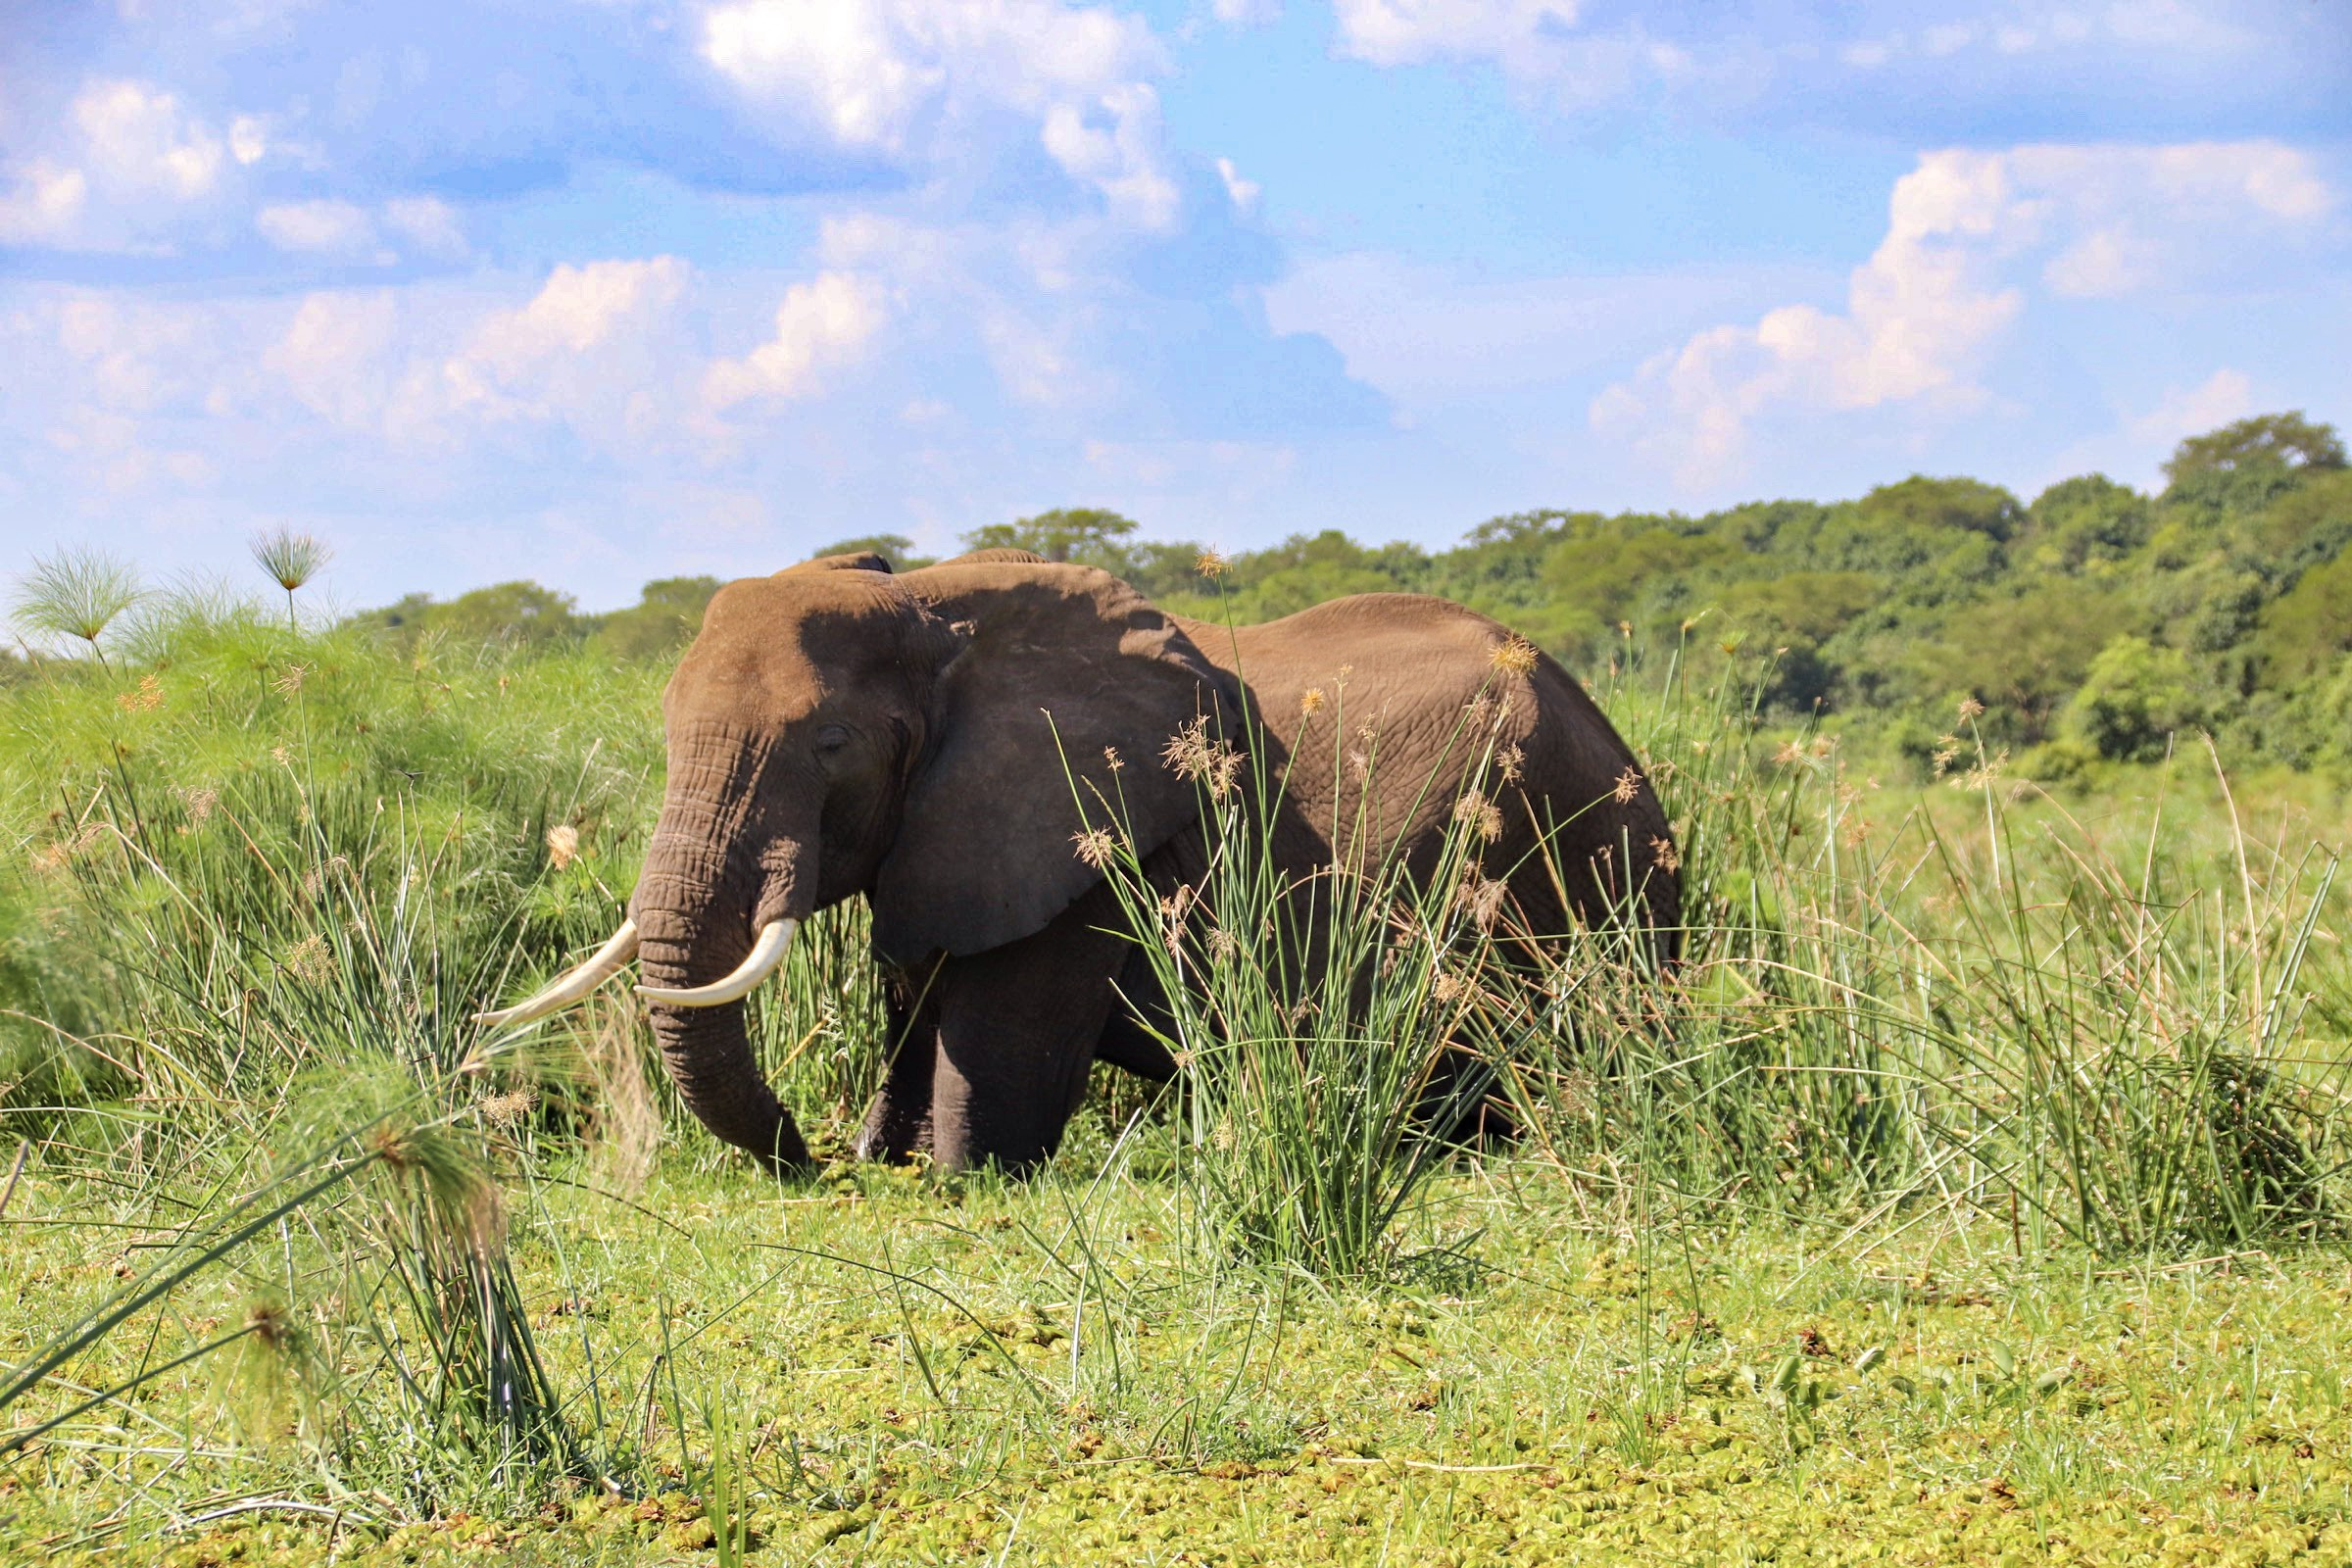 12-Day Trip Including Gorilla Trekking, Big 5 and Nature Sighting 2